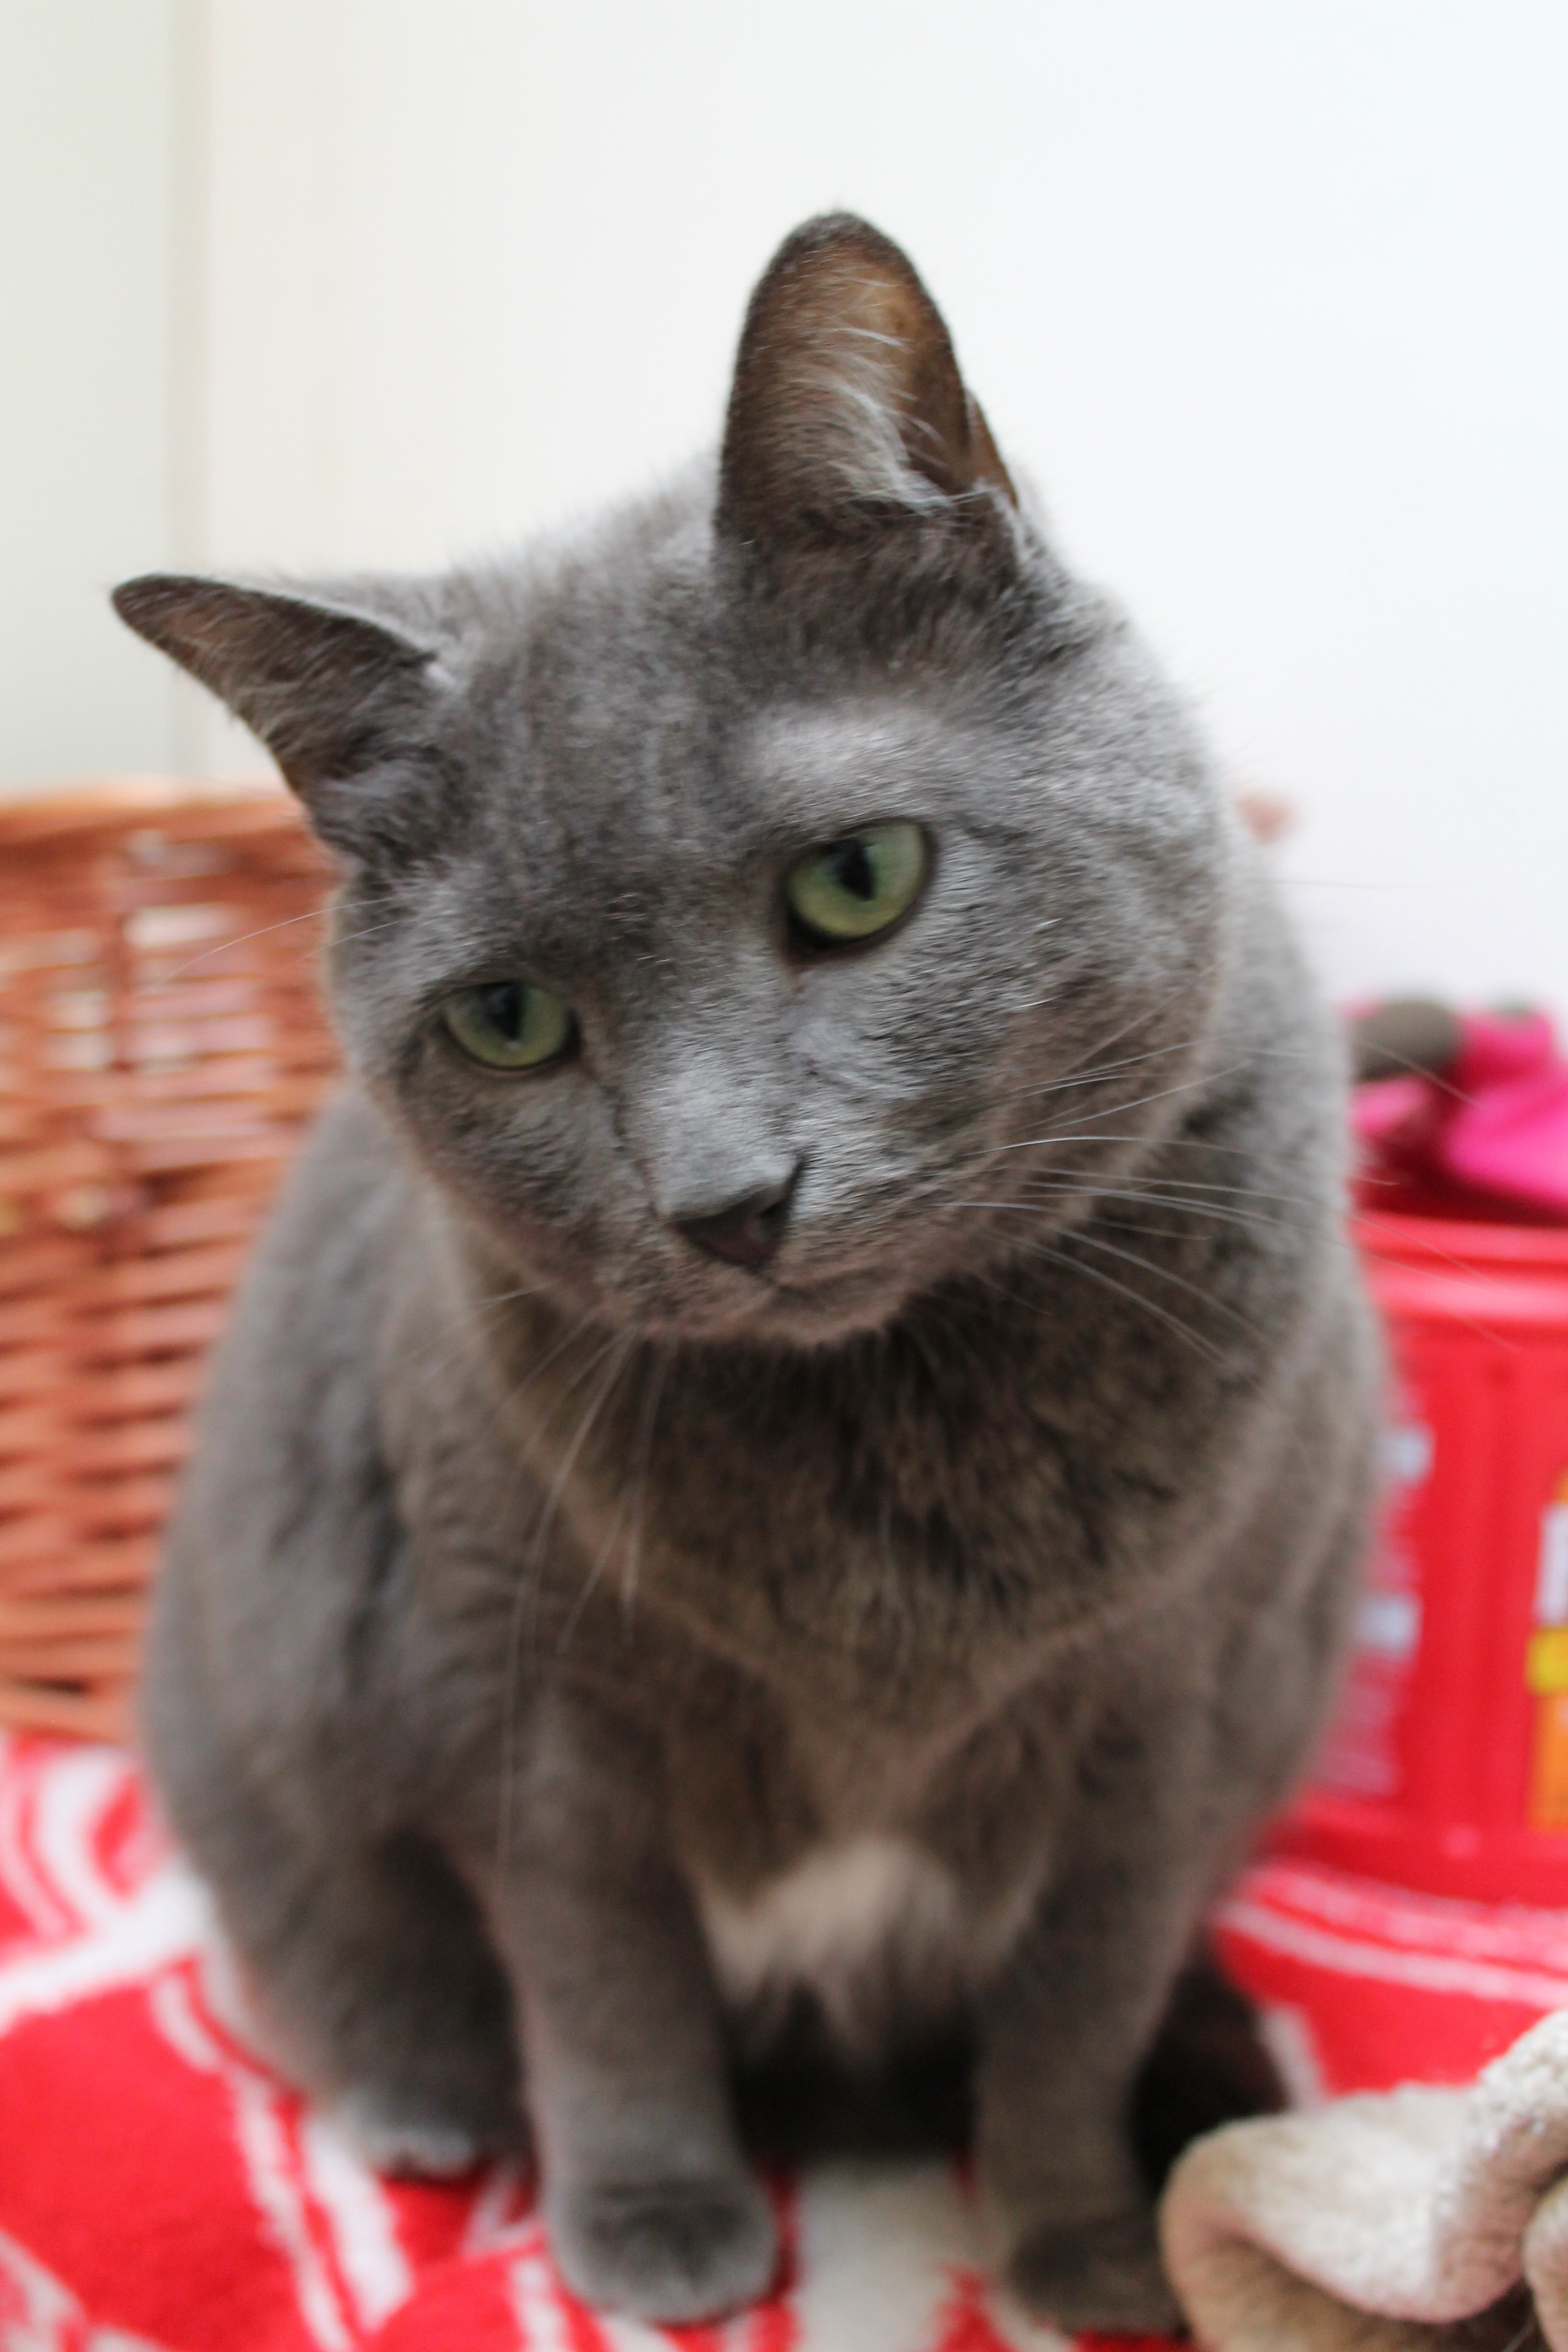 Pet of the Week: Smokie - Contributed photo